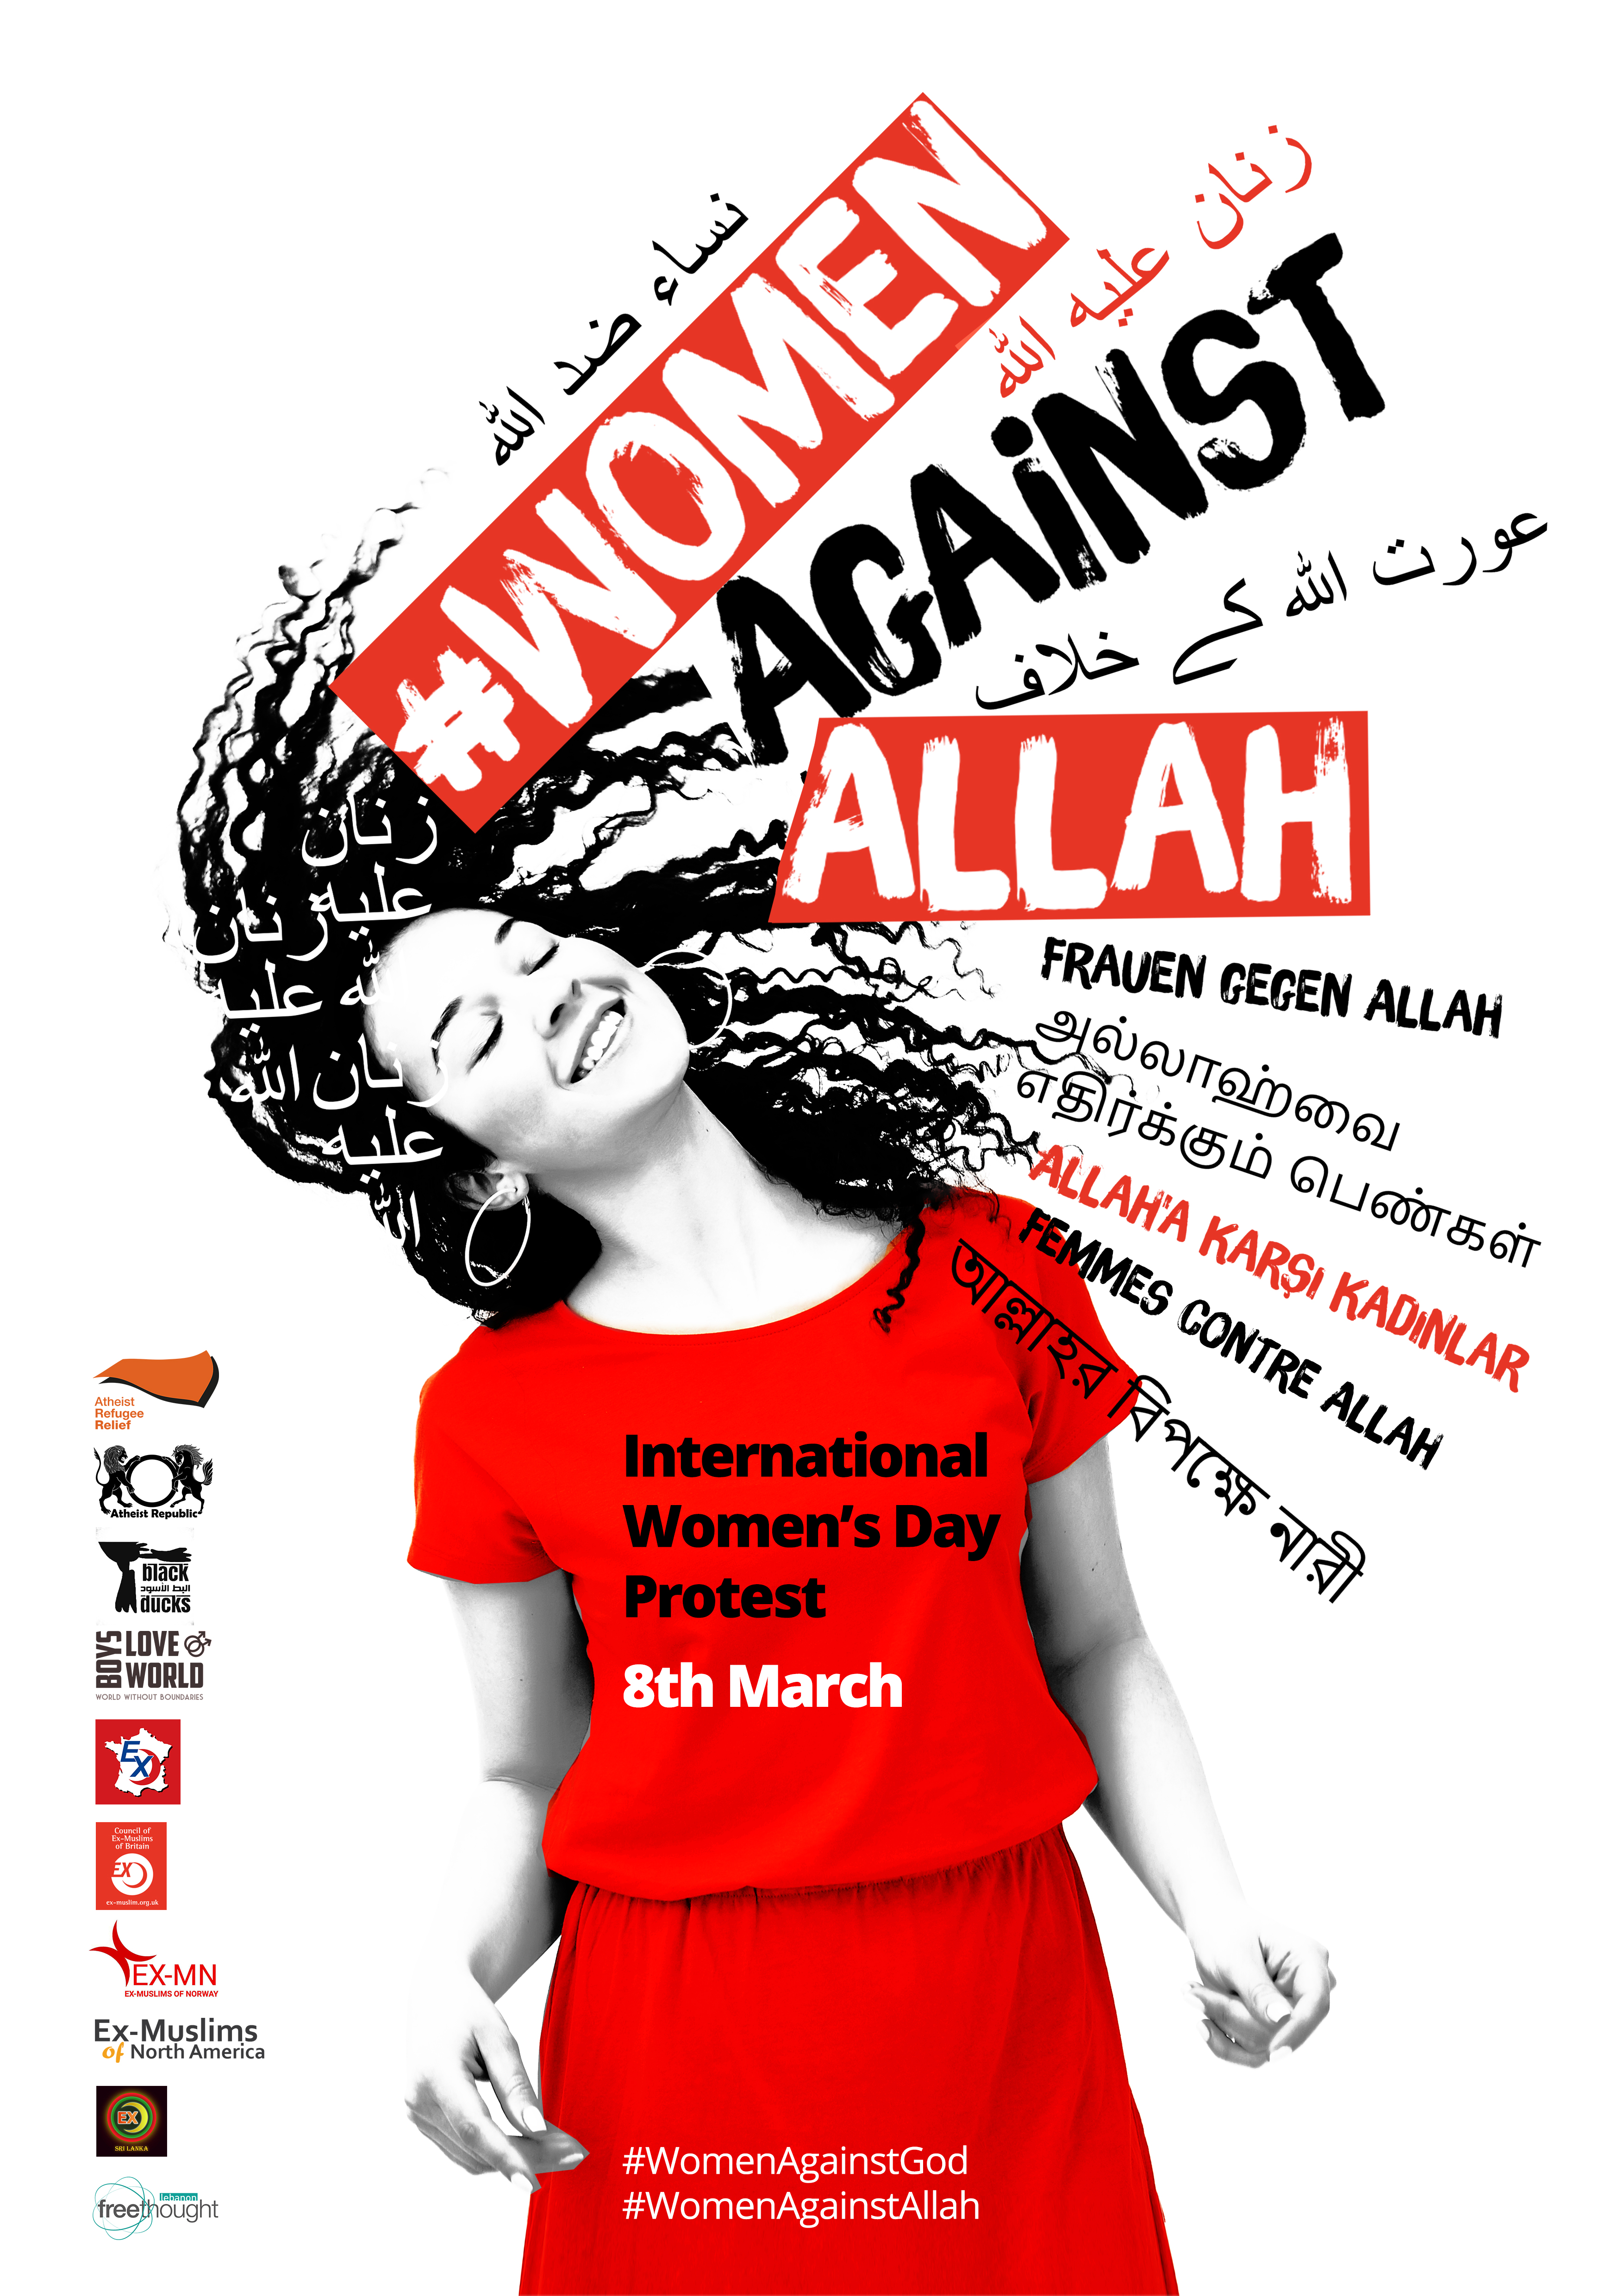 Women Against Allah: 8 March International Women's Day Protest